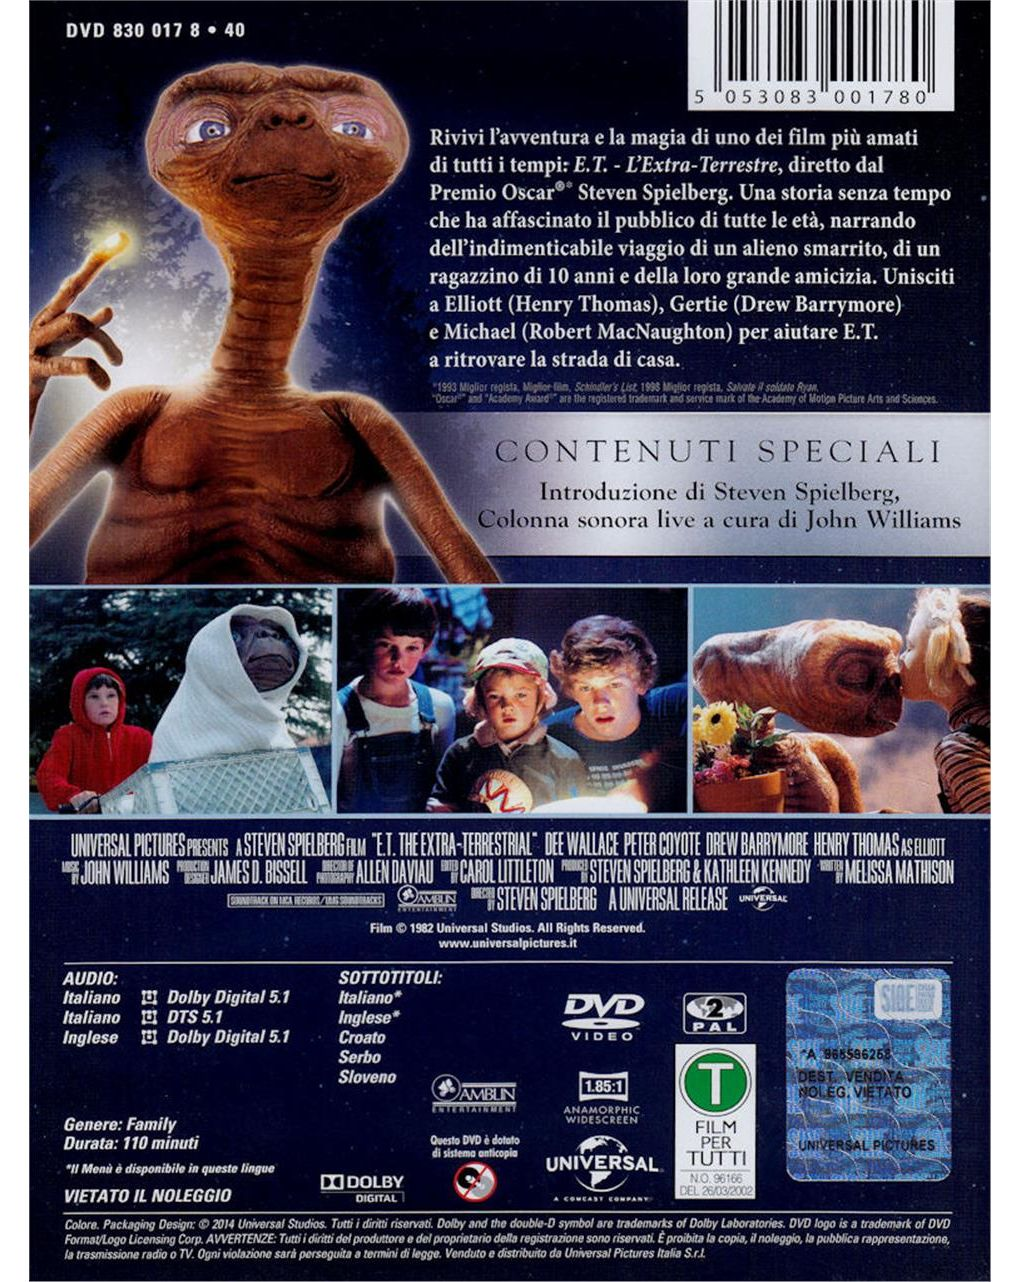 Dvd e.t. l'extra-terrestre - Video Delta